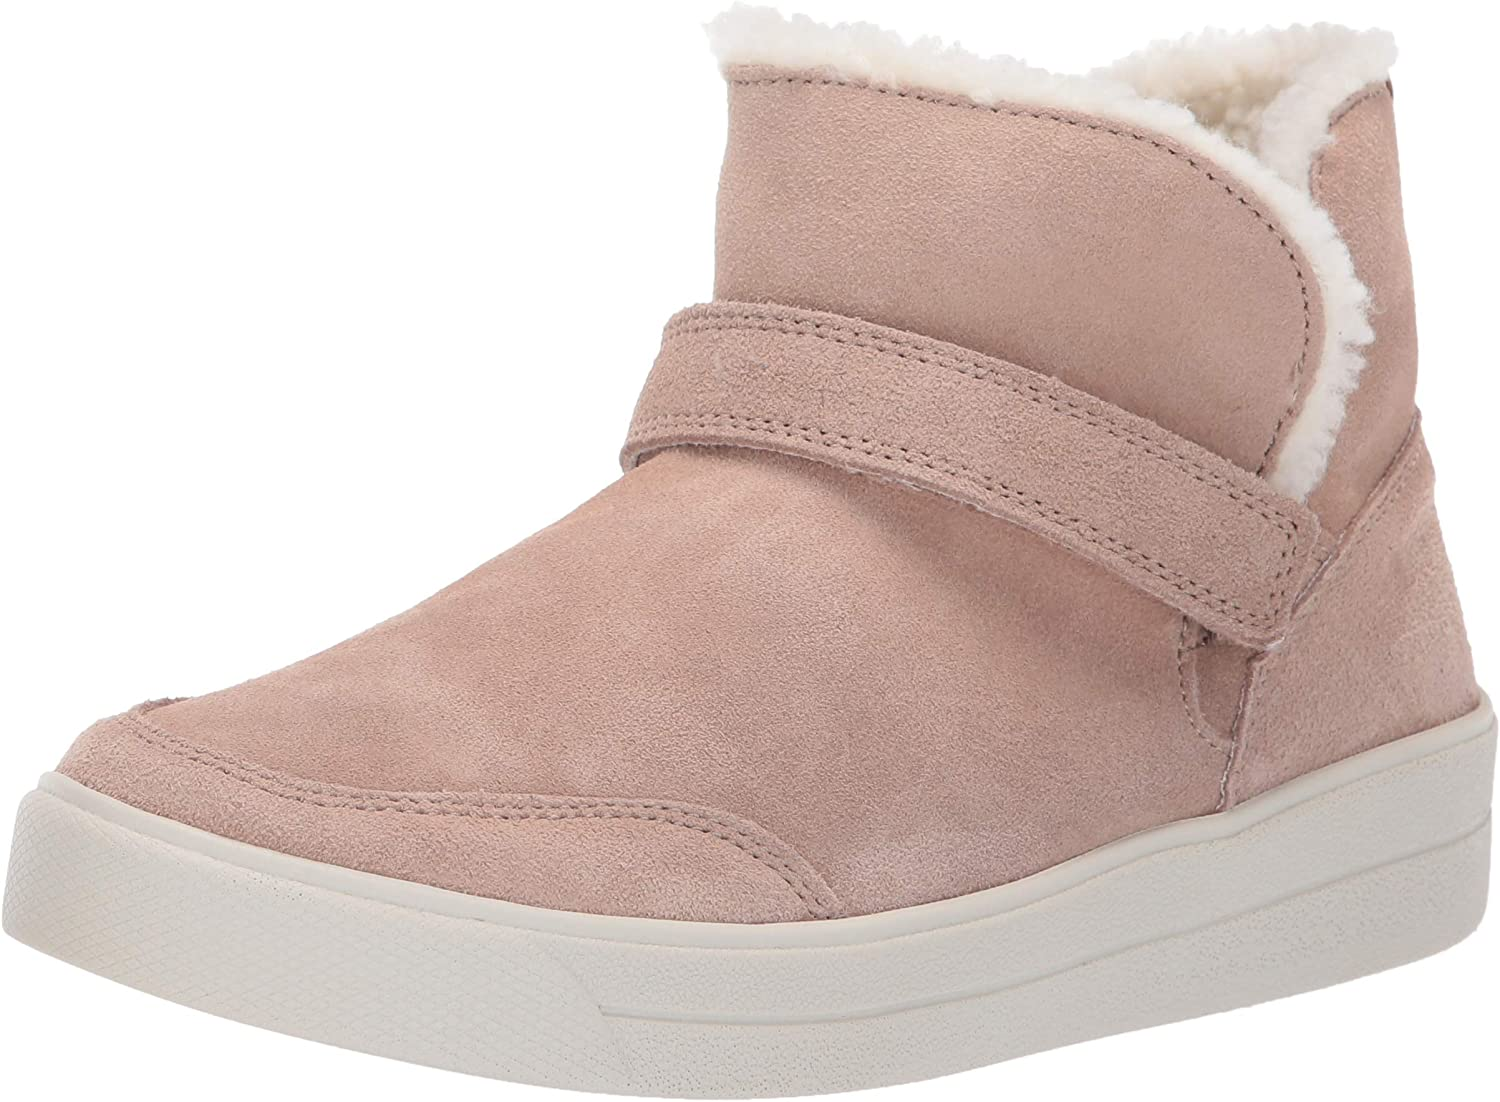 Ryka Womens Valee Ankle Boot